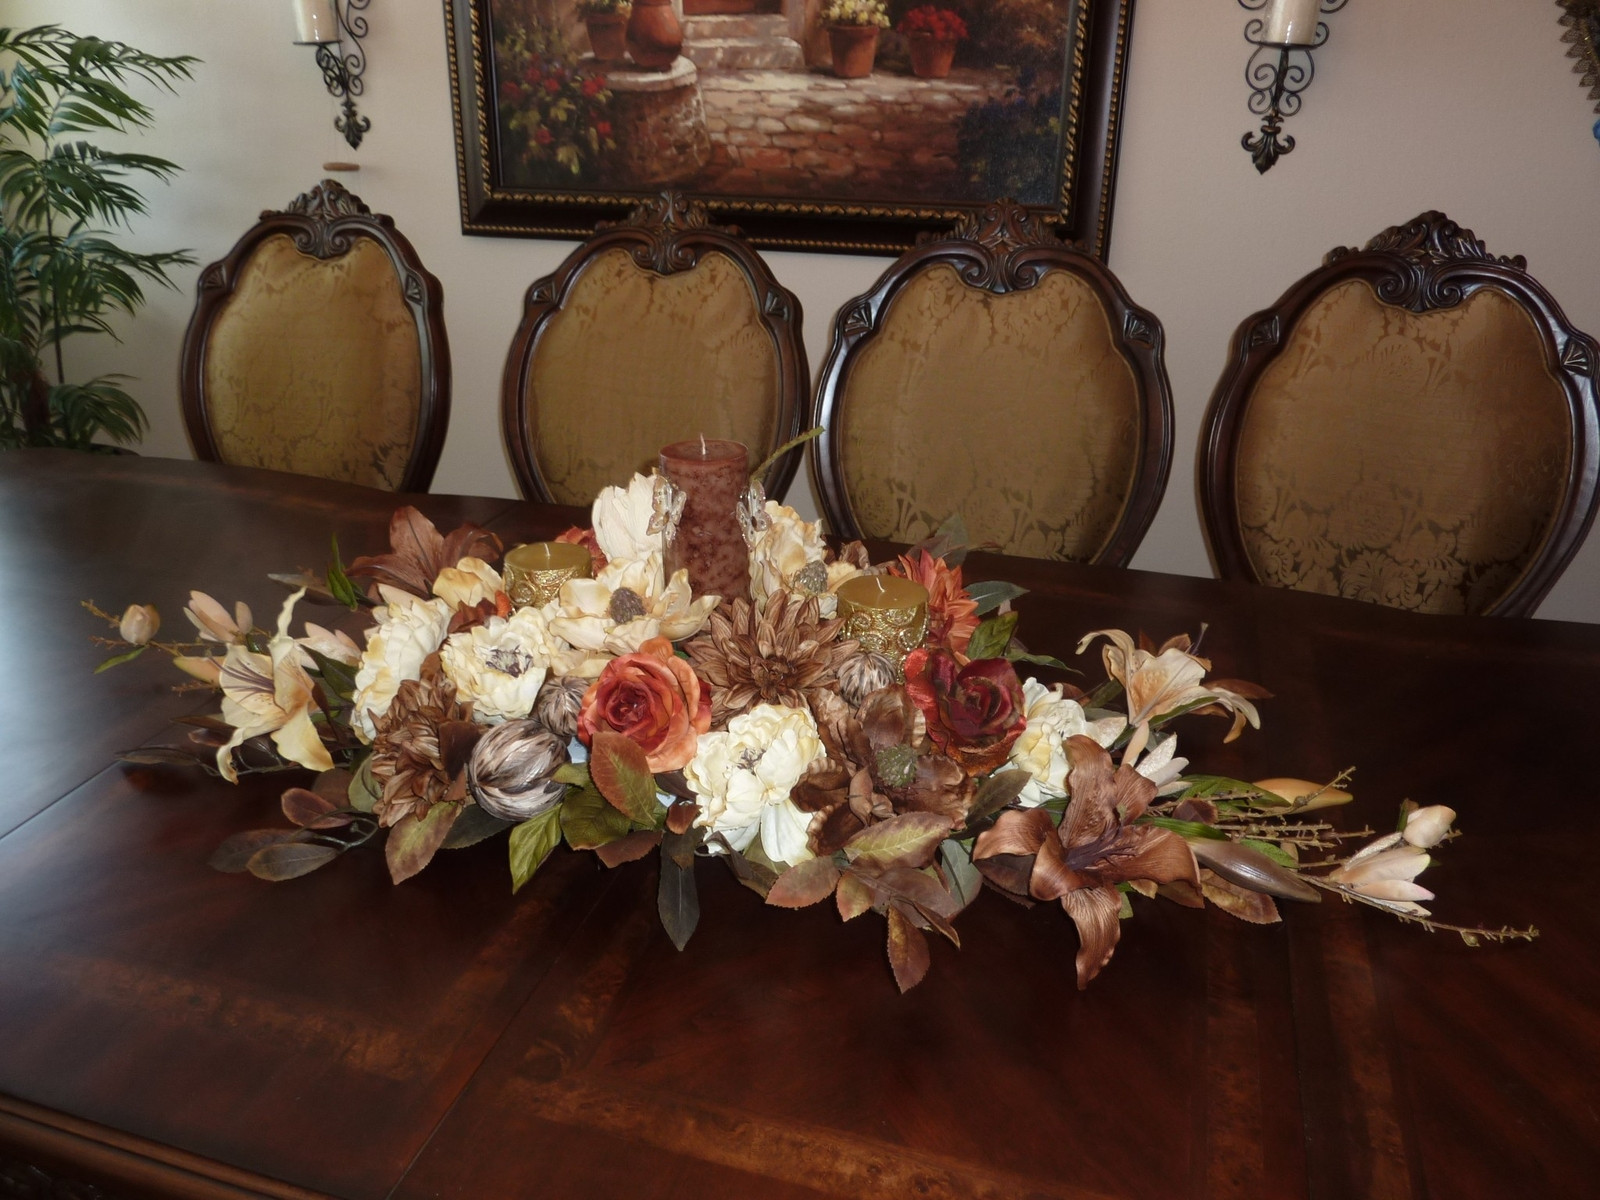 Dinner Table Centerpiece  40 Amazing Fall Centerpieces For Dining Room Table